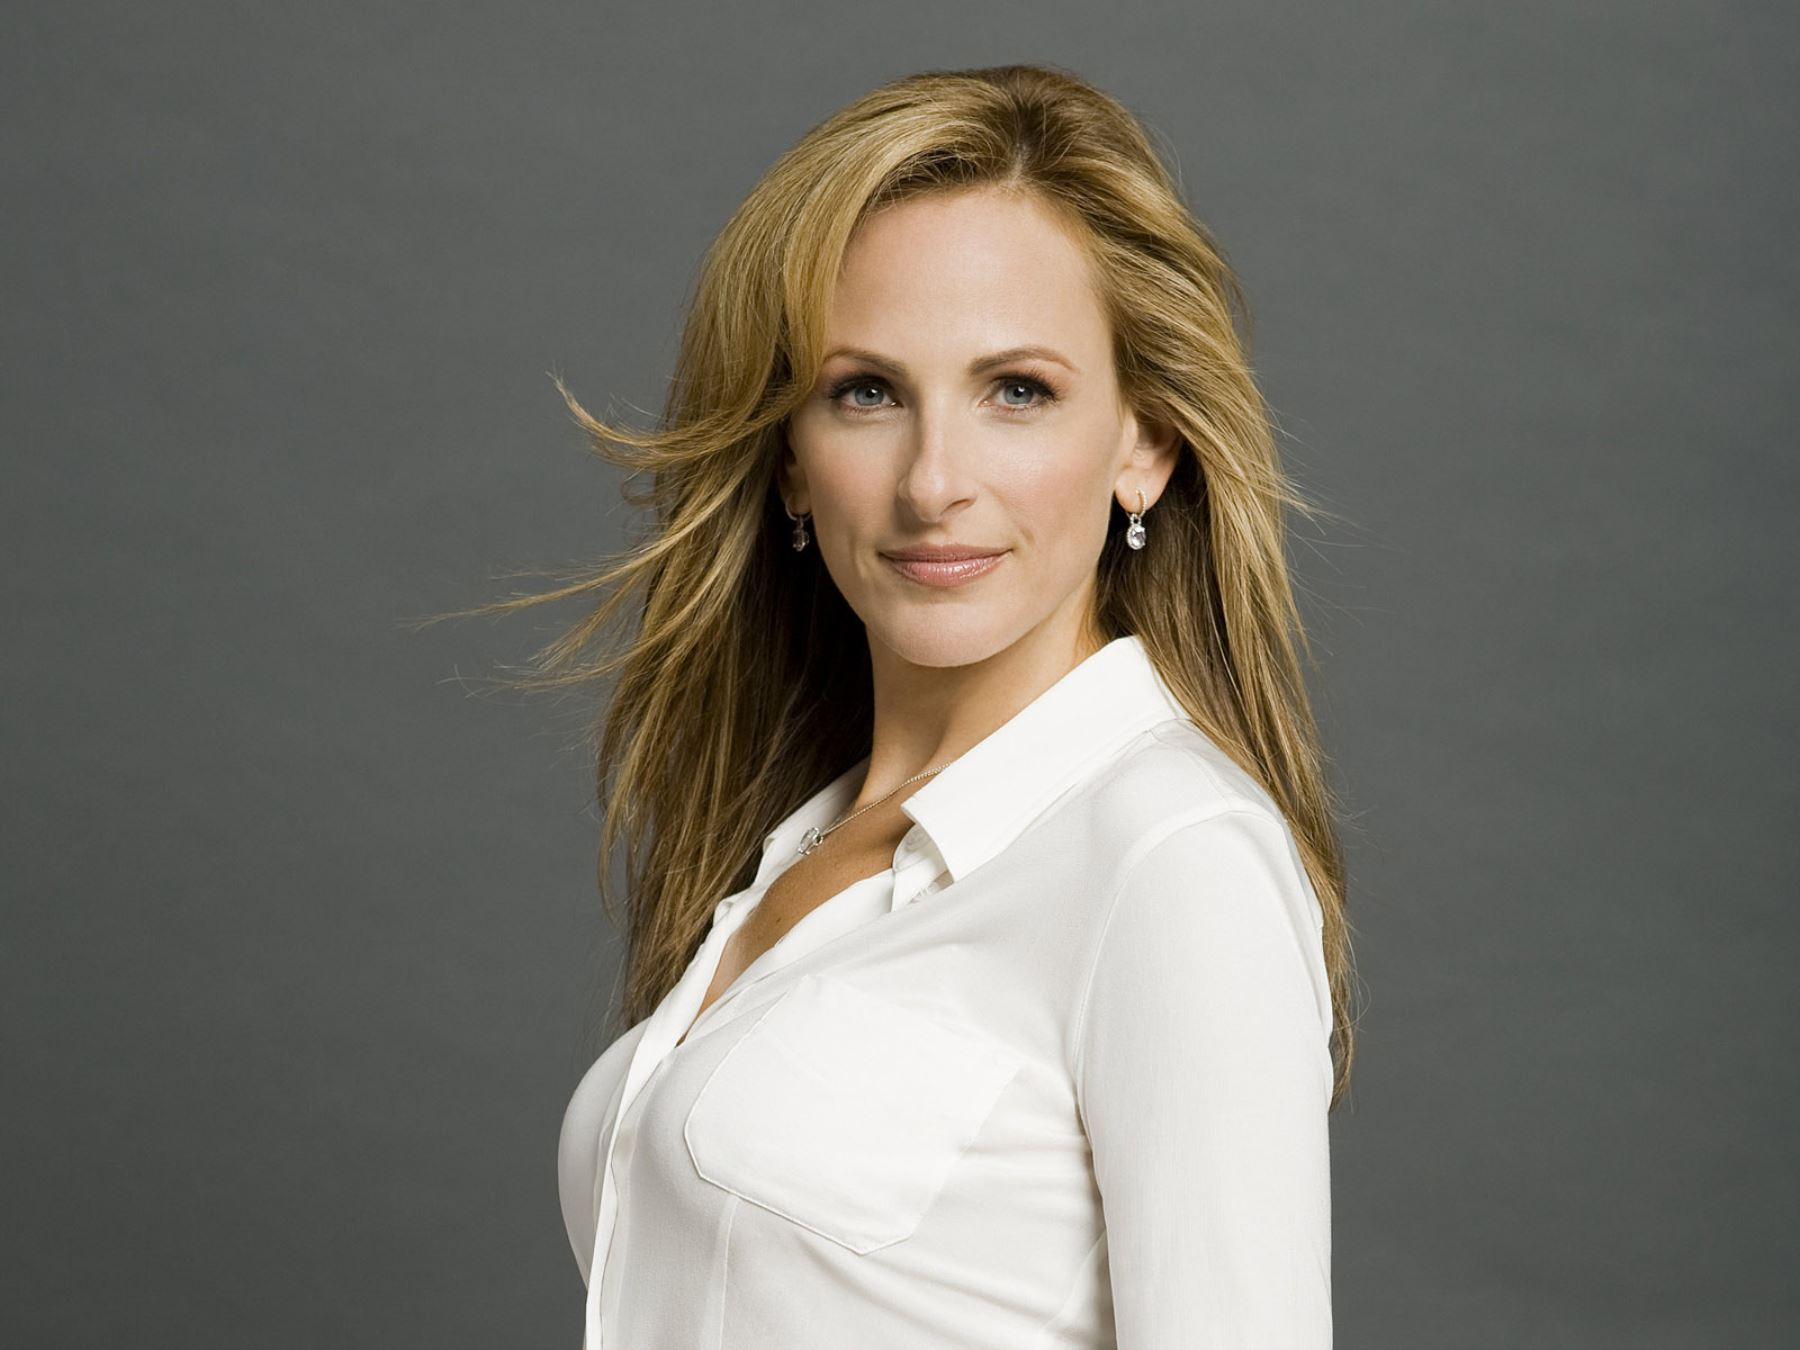 Marlee Matlin widescreen wallpapers